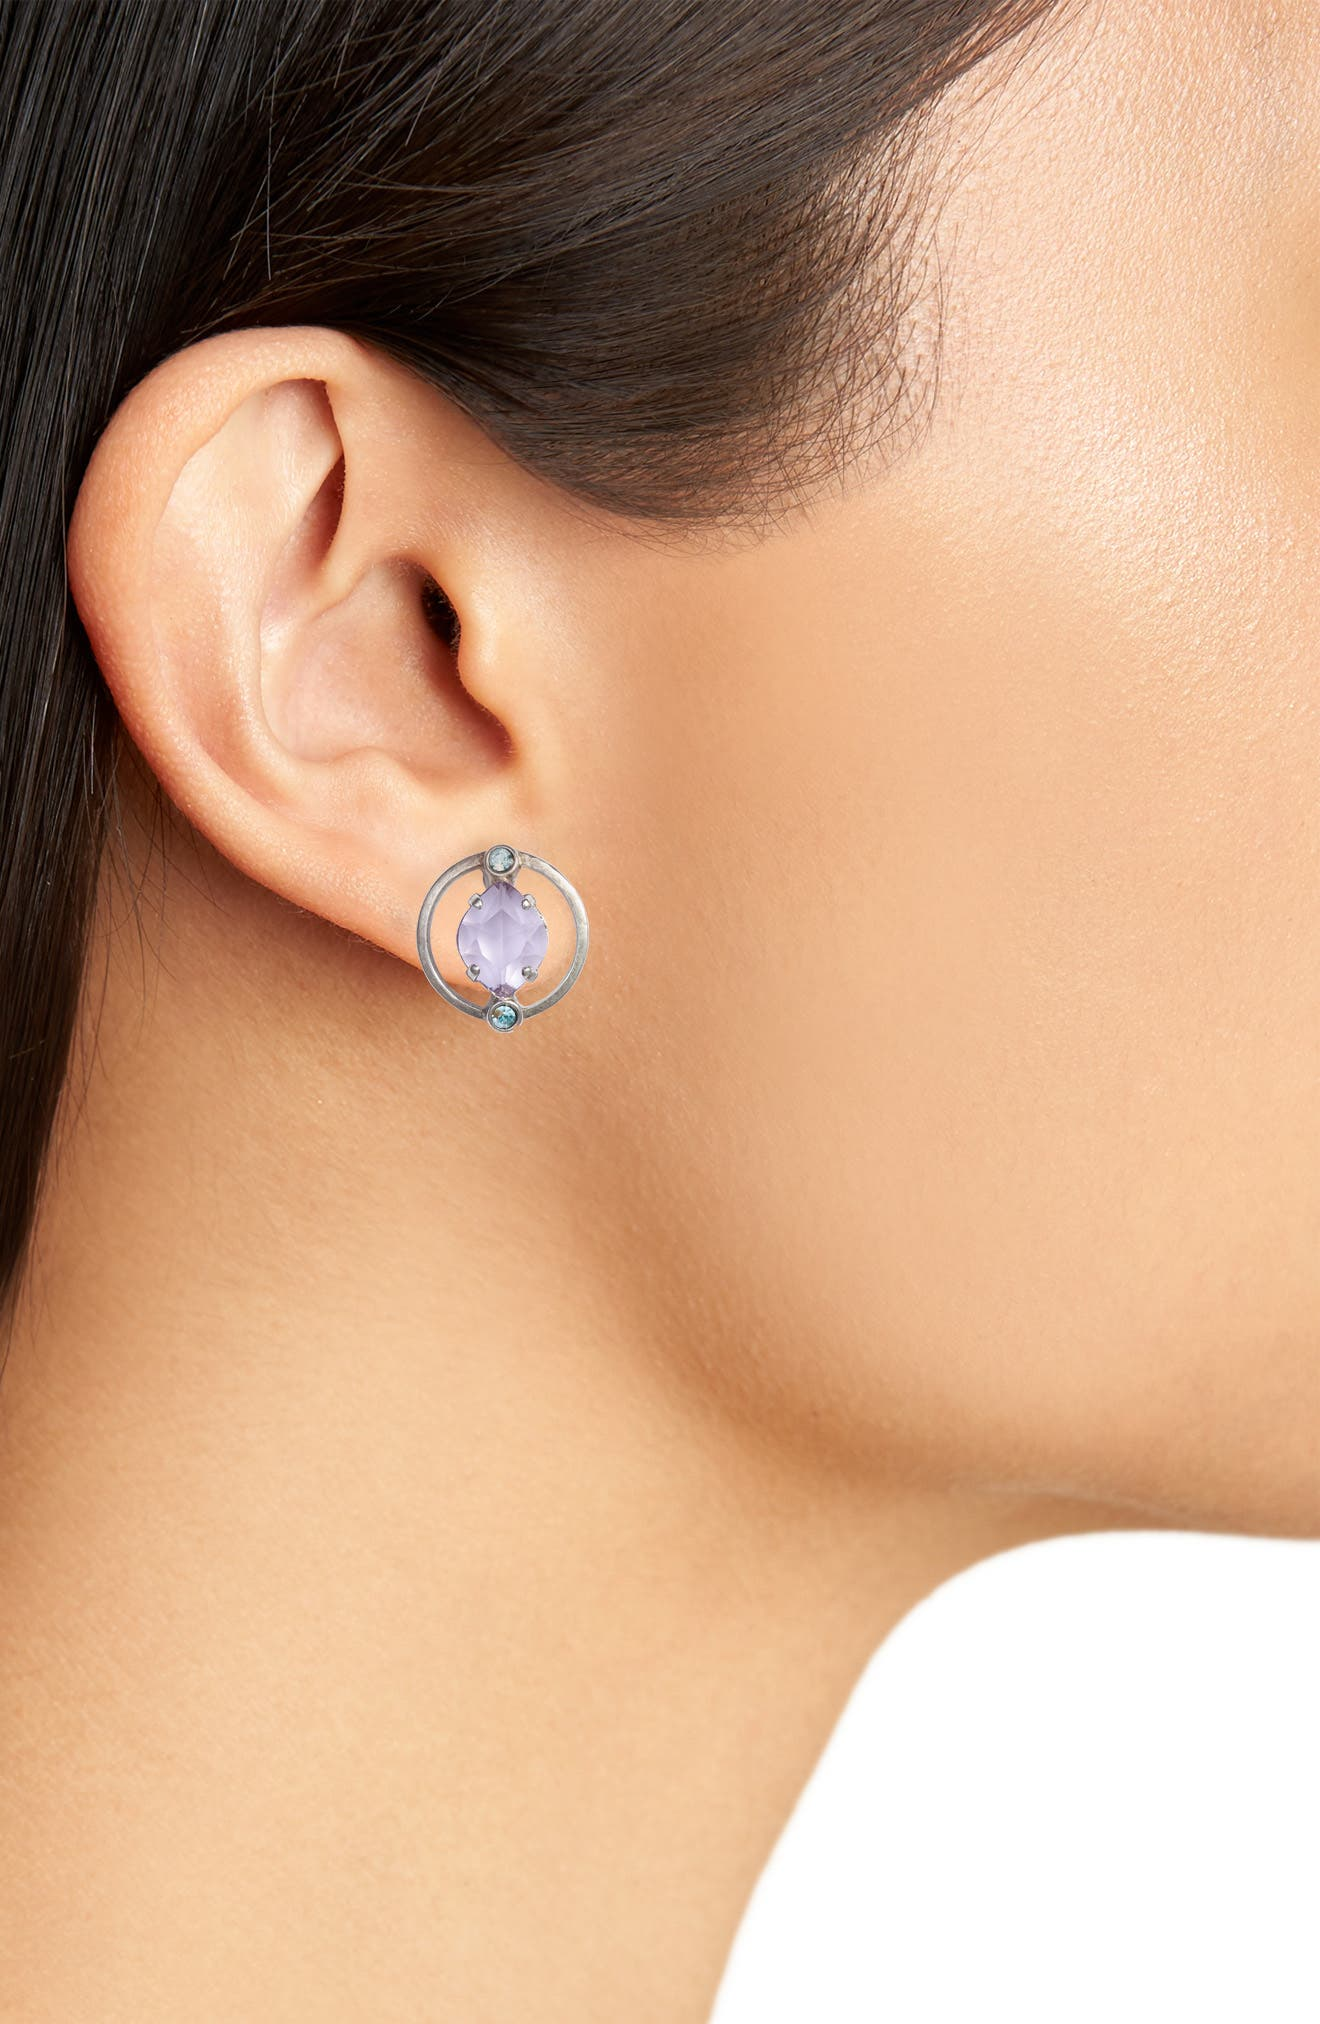 Tiger Lily Crystal Earrings,                             Alternate thumbnail 2, color,                             500